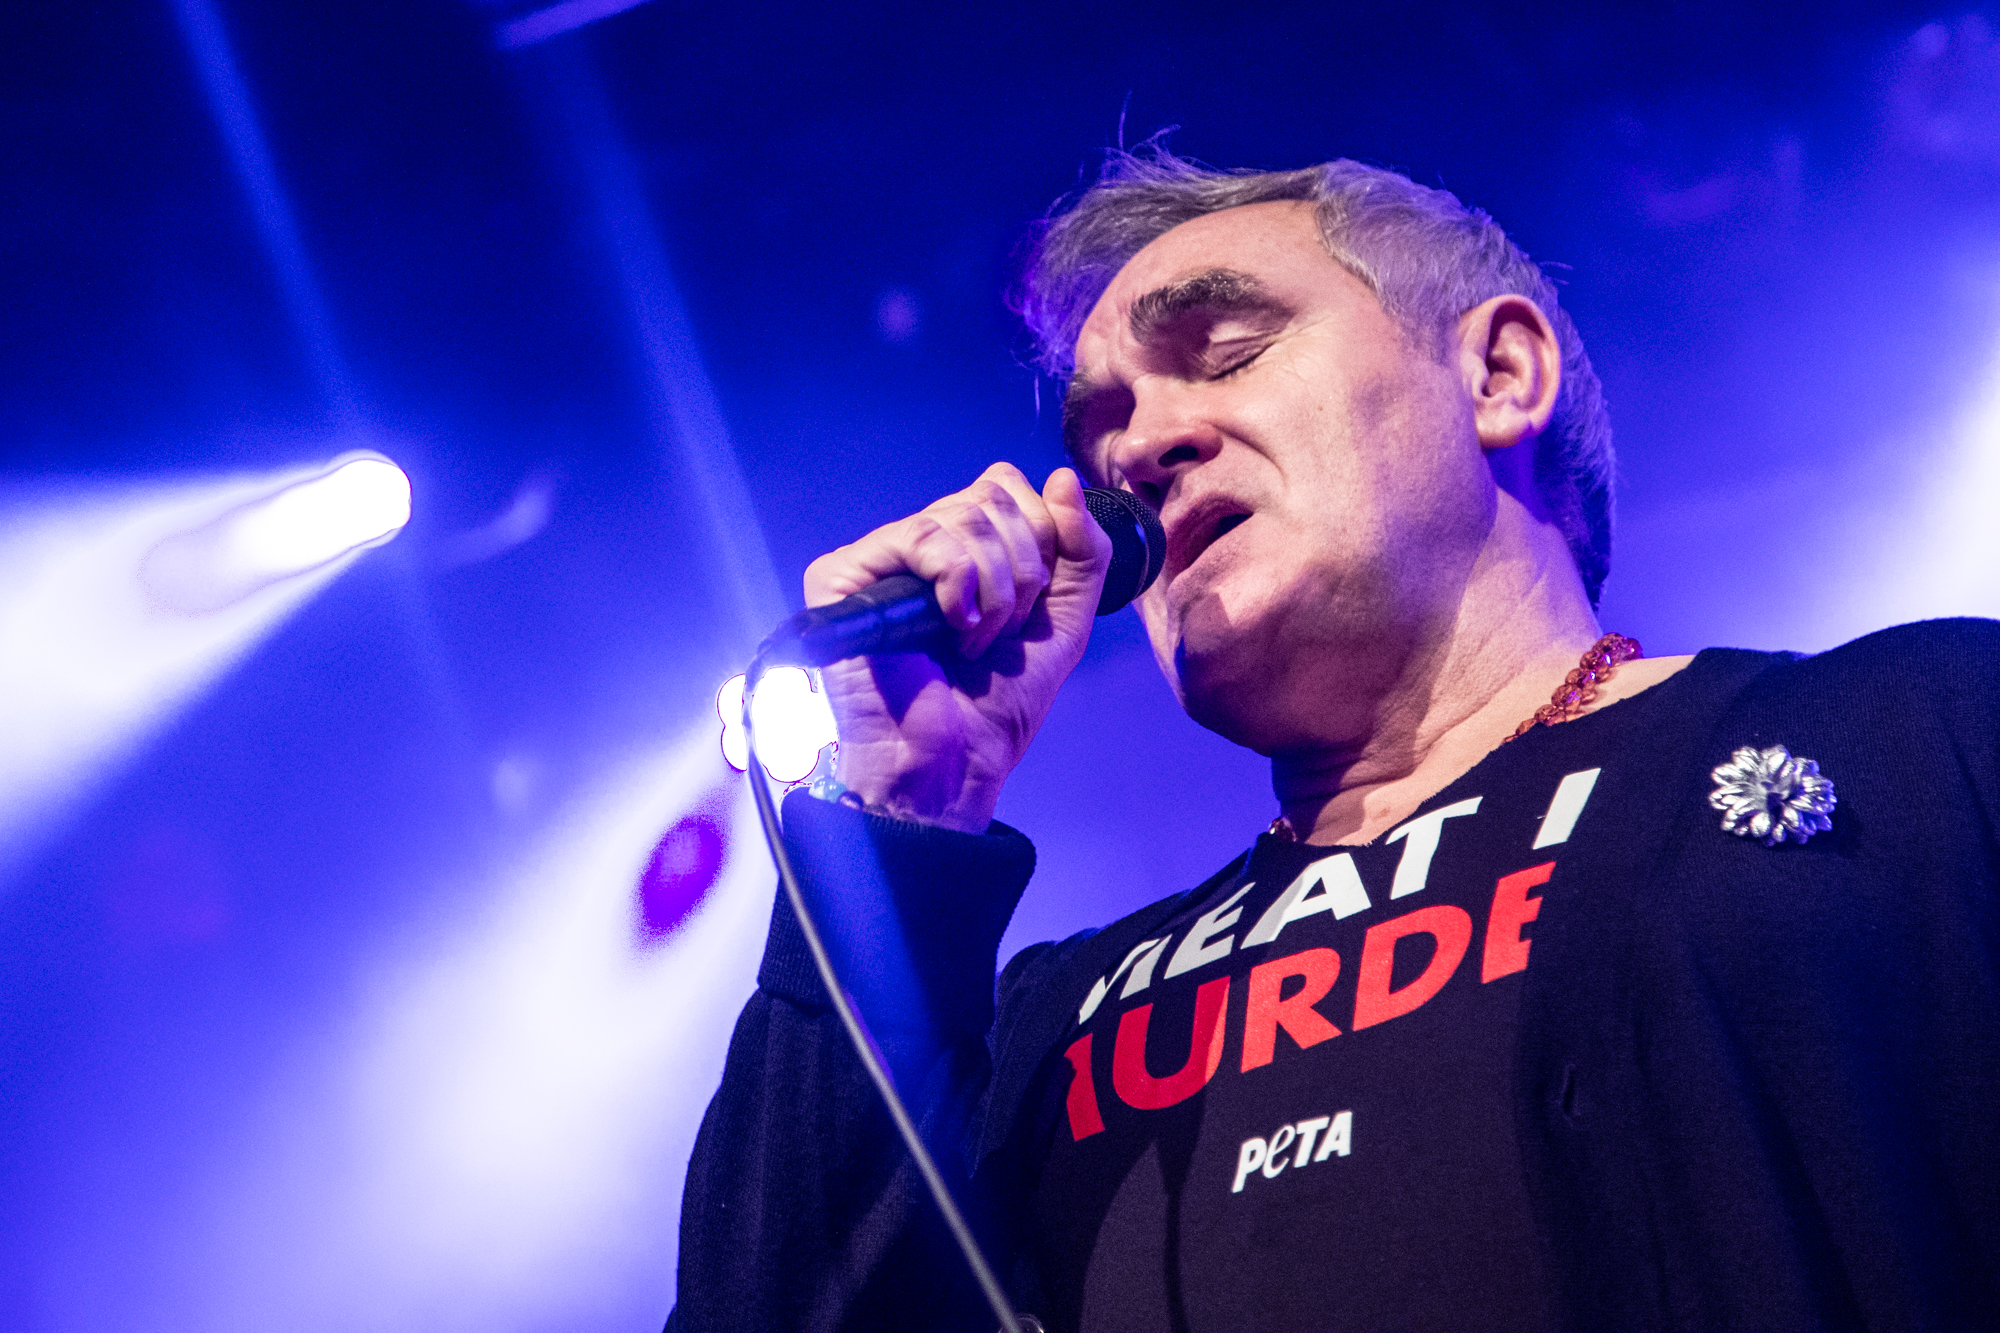 Morrissey anunció un nuevo álbum de estudio: I Am Not a Dog on a Chain